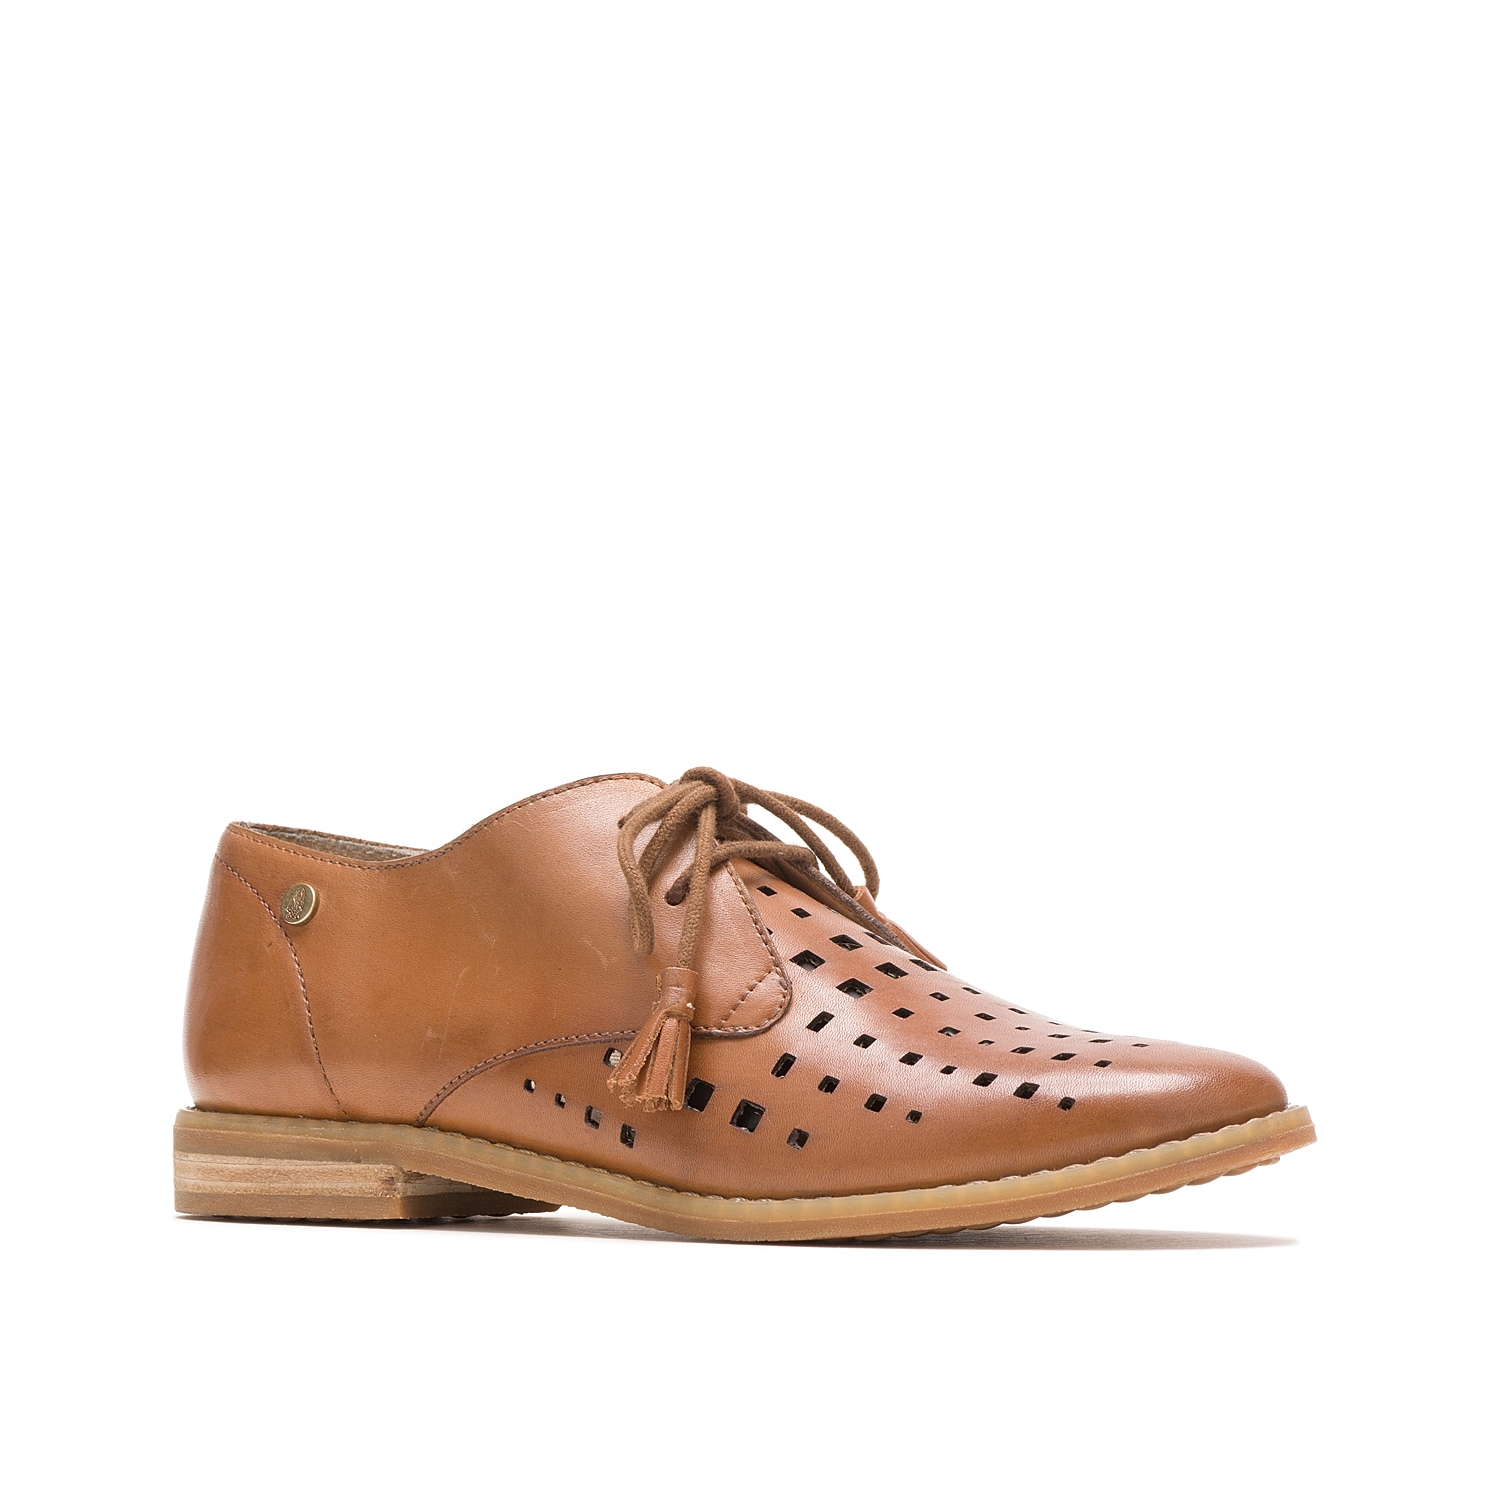 Pull off a modern look with the Chardon oxford from Hush Puppies. Geometric perforations and tassel accents upgrade these charming dress shoes that lend a distinct twist to menswear-inspired style.